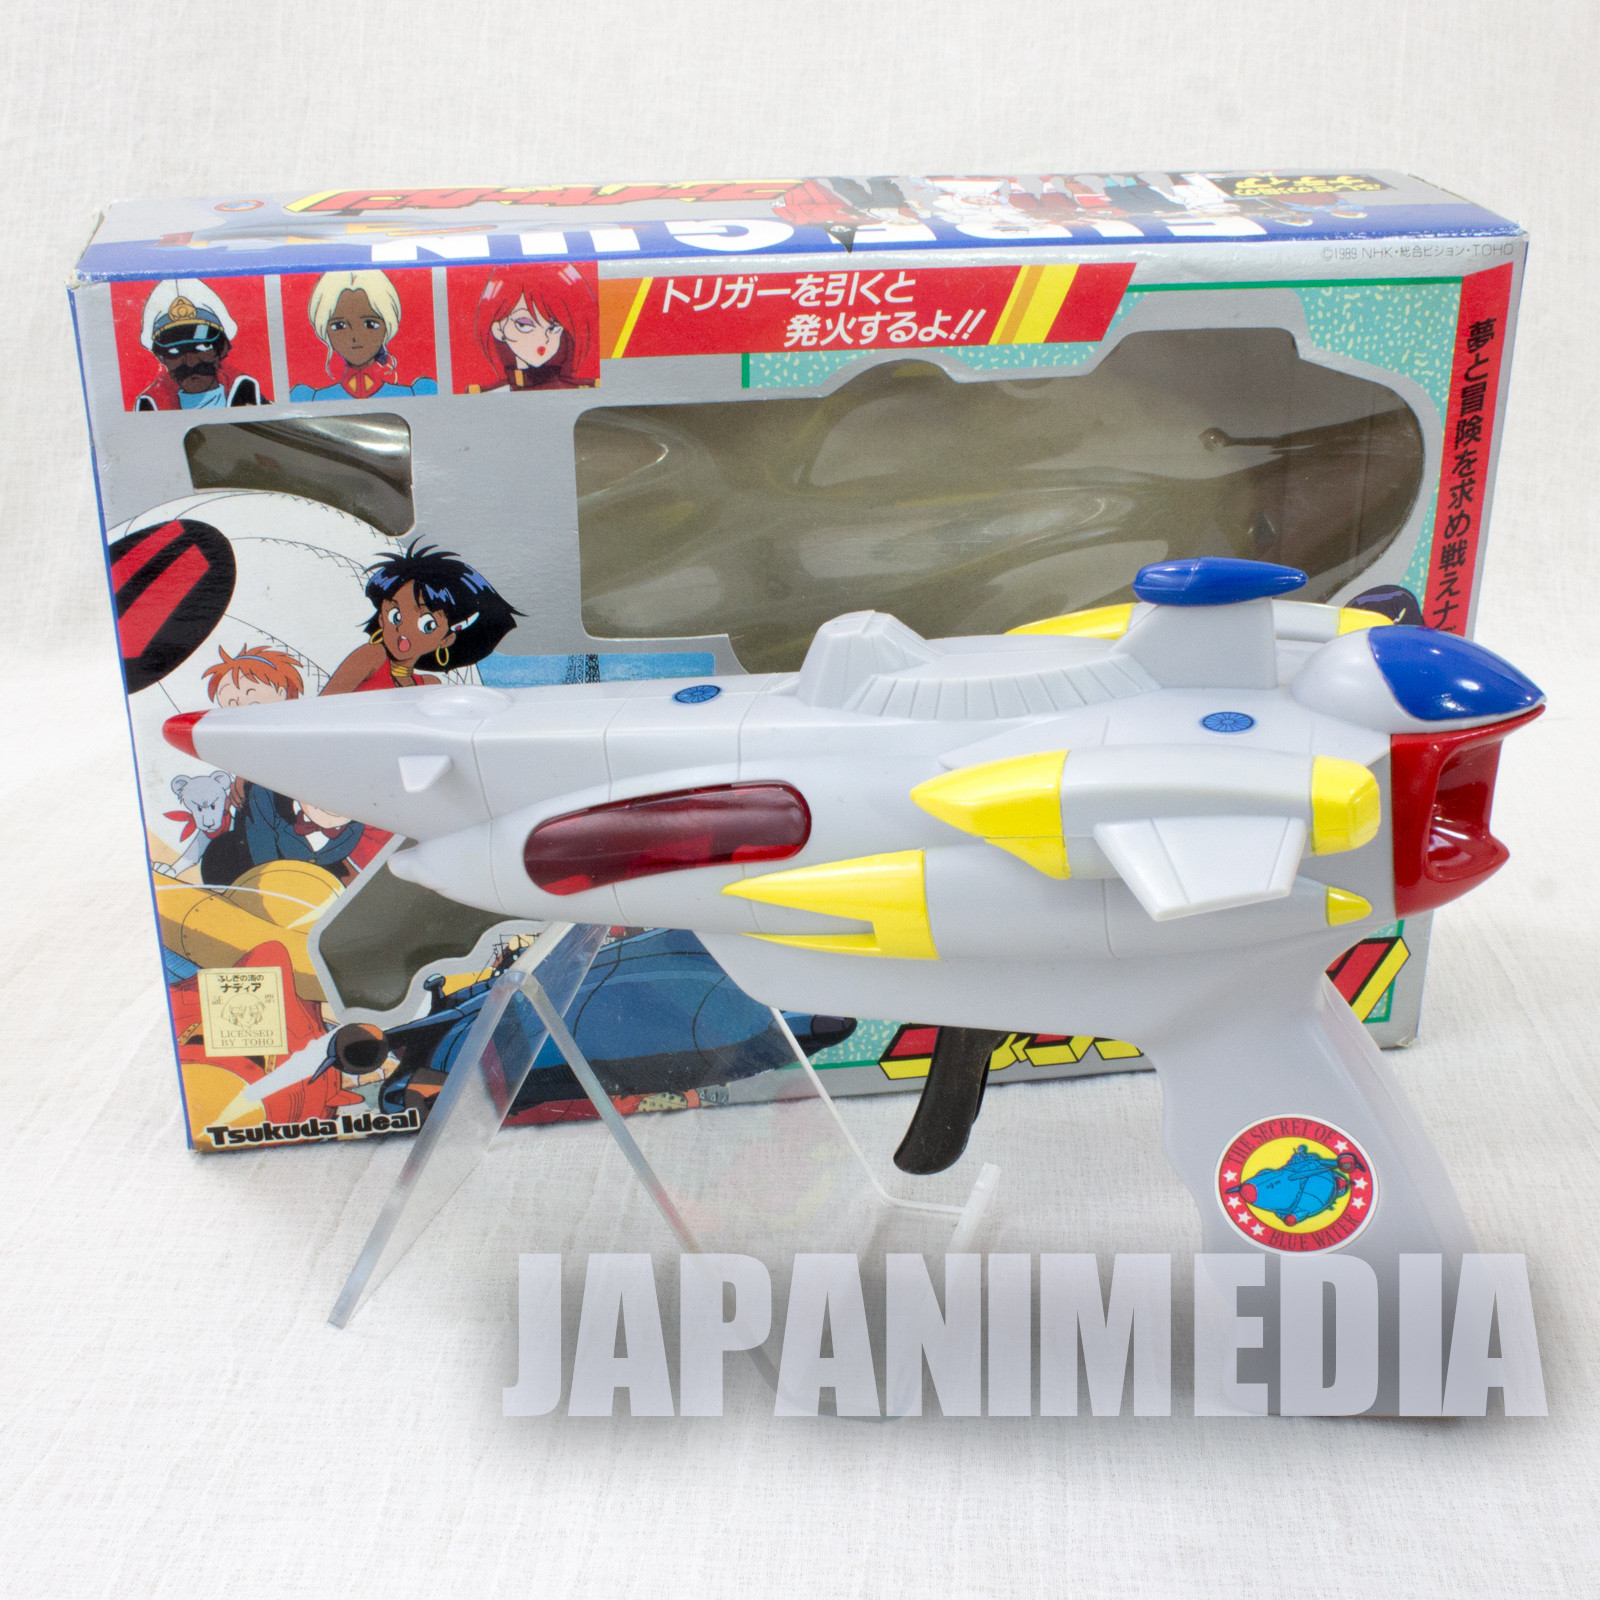 Retro RARE Nadia The Secret of Blue Water Fire Gun Toy Tsukuda Ideal JAPAN ANIME